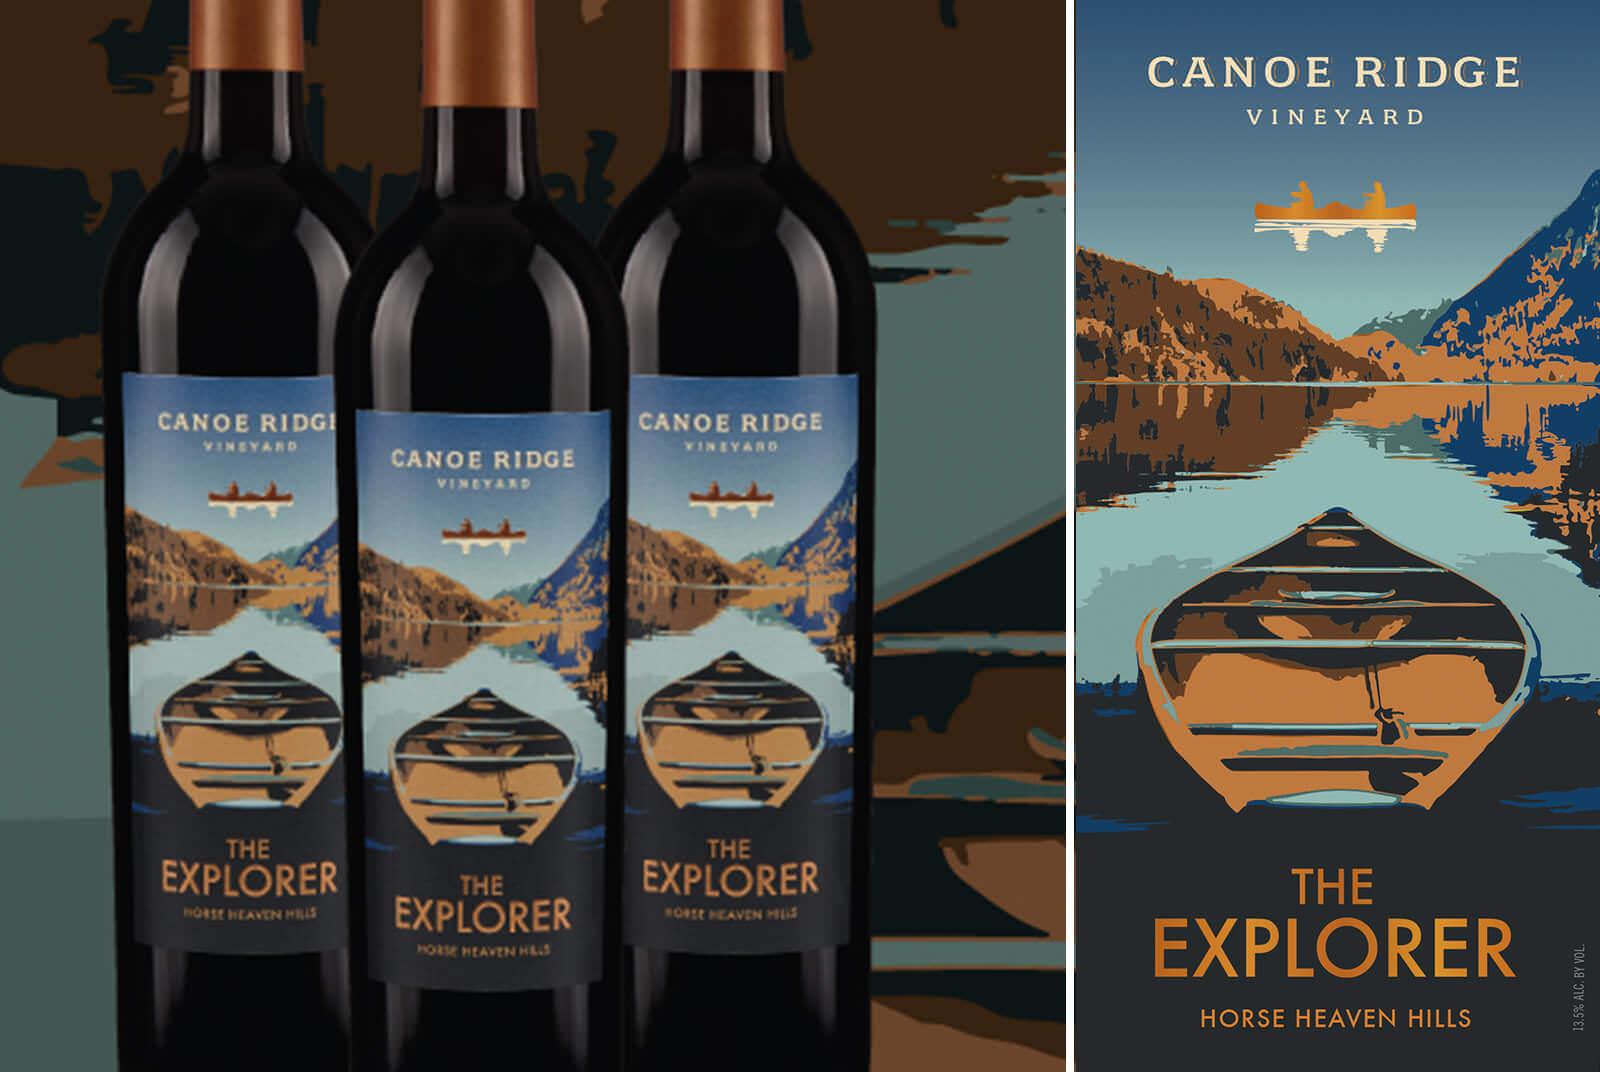 Image of Canoe Ridge Label design